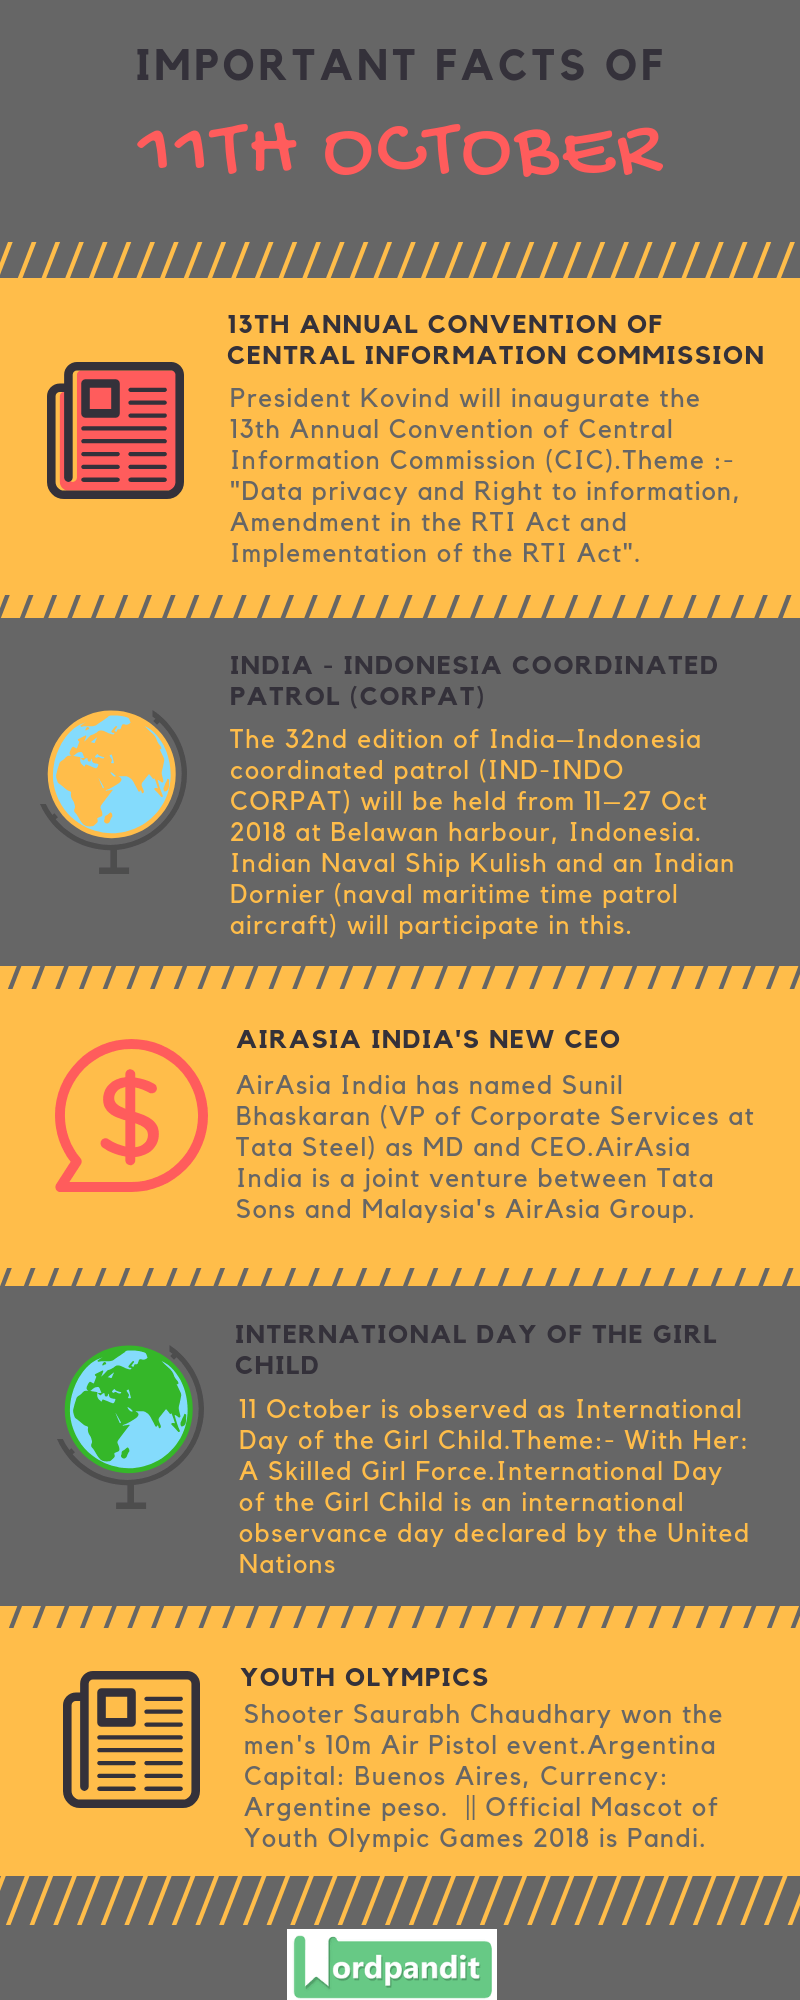 Daily Current Affairs 11 October 2018 Current Affairs Quiz 11 October 2018 Current Affairs Infographic